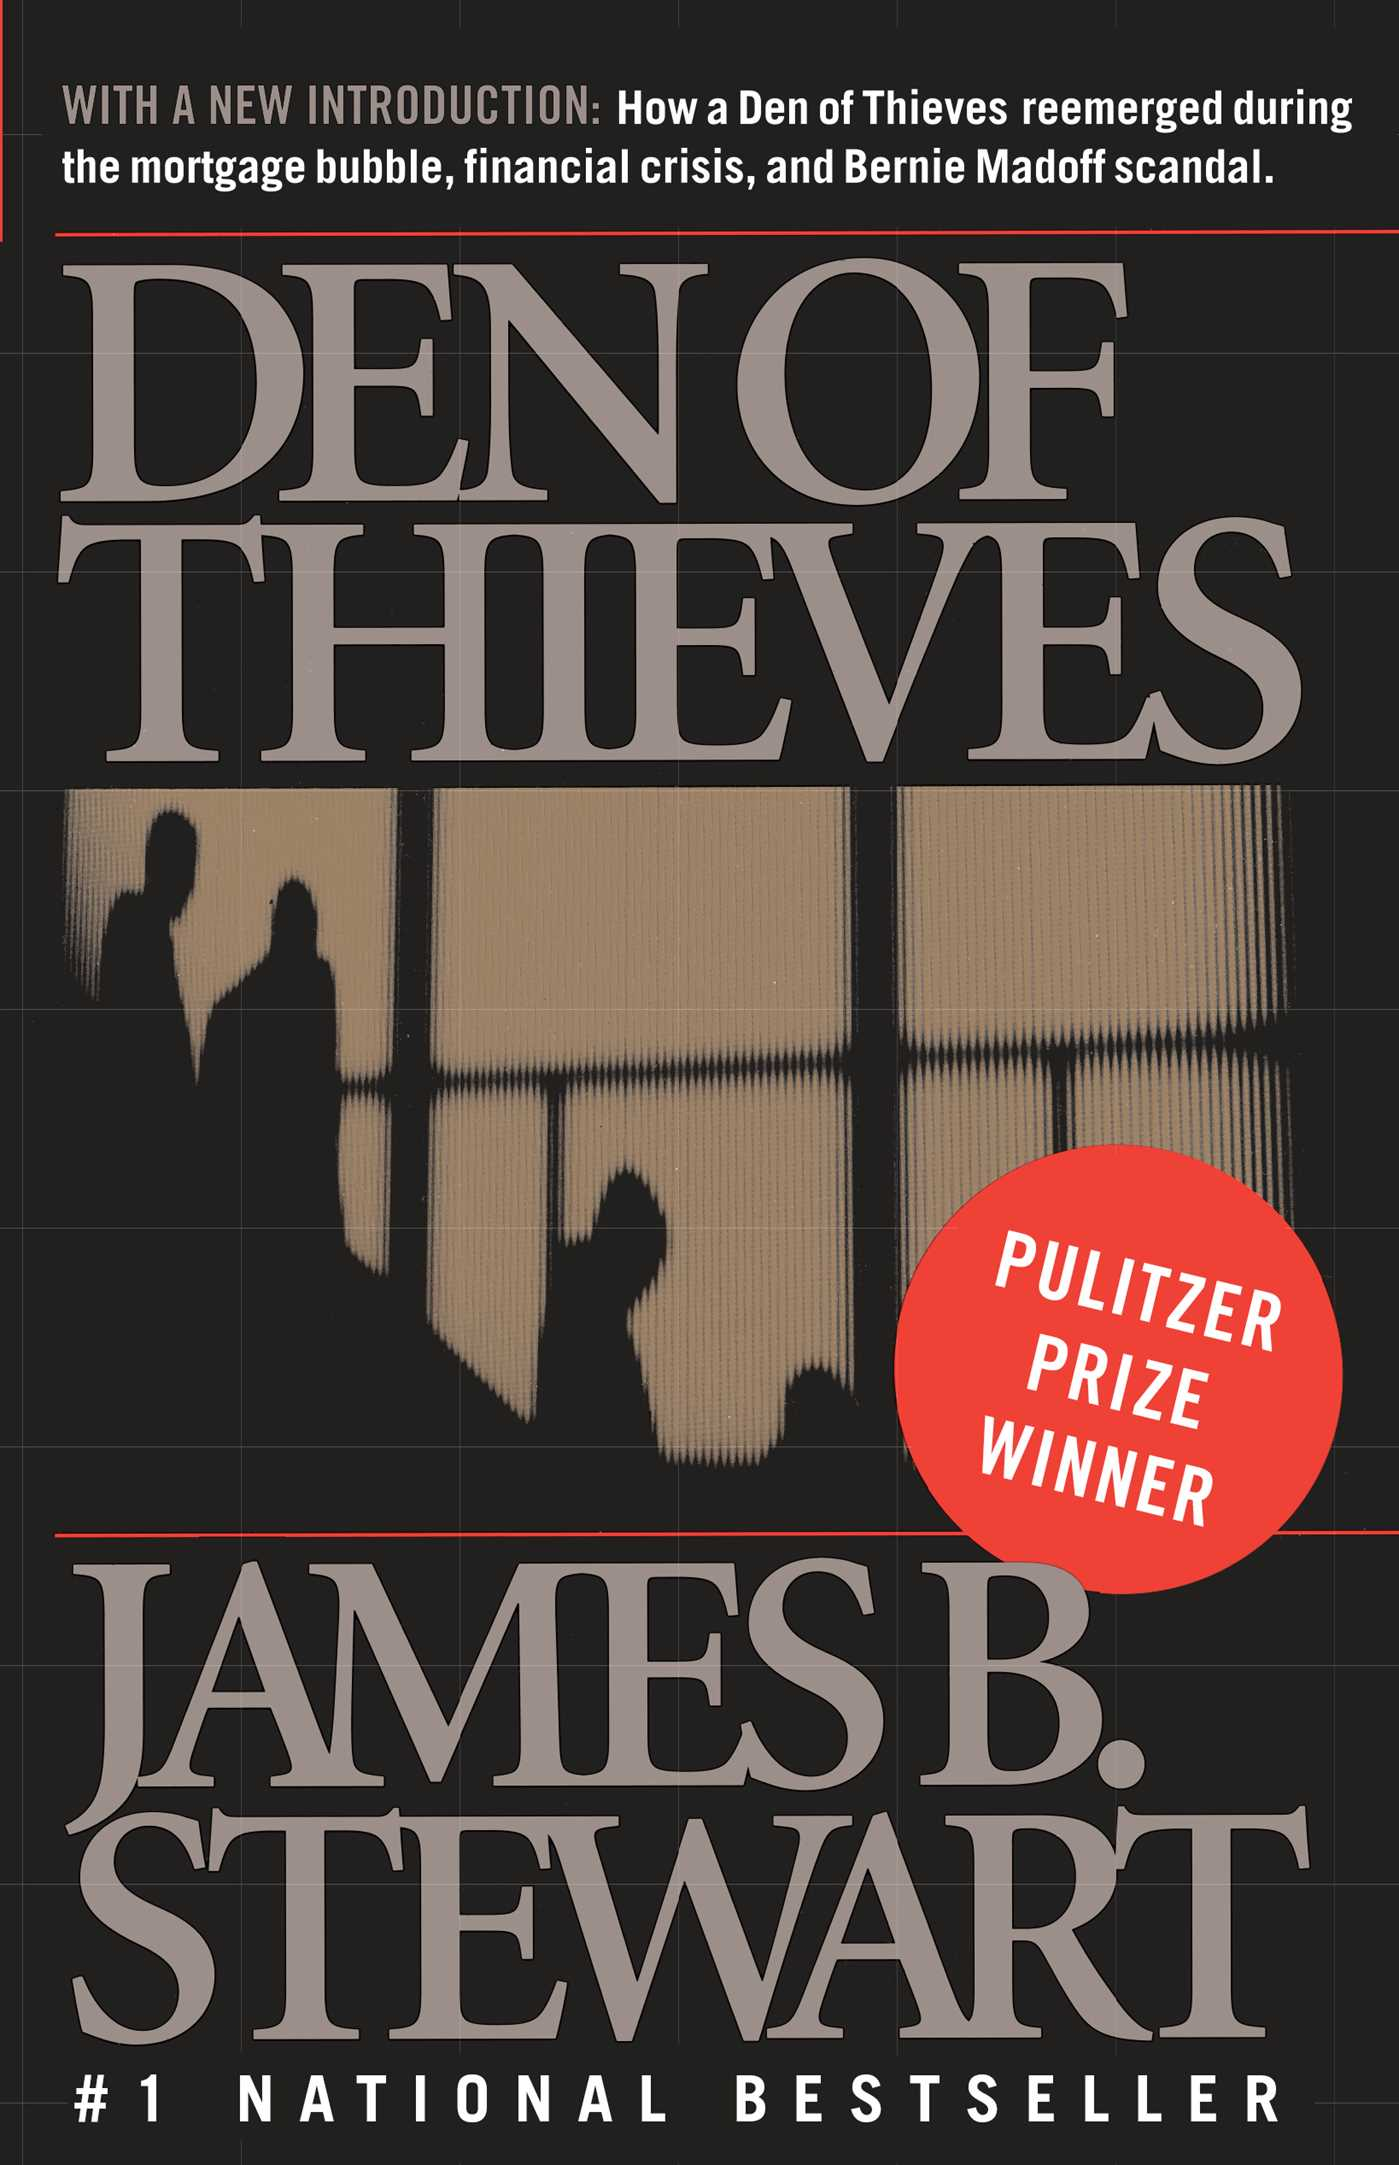 Den of thieves 9780671792275 hr